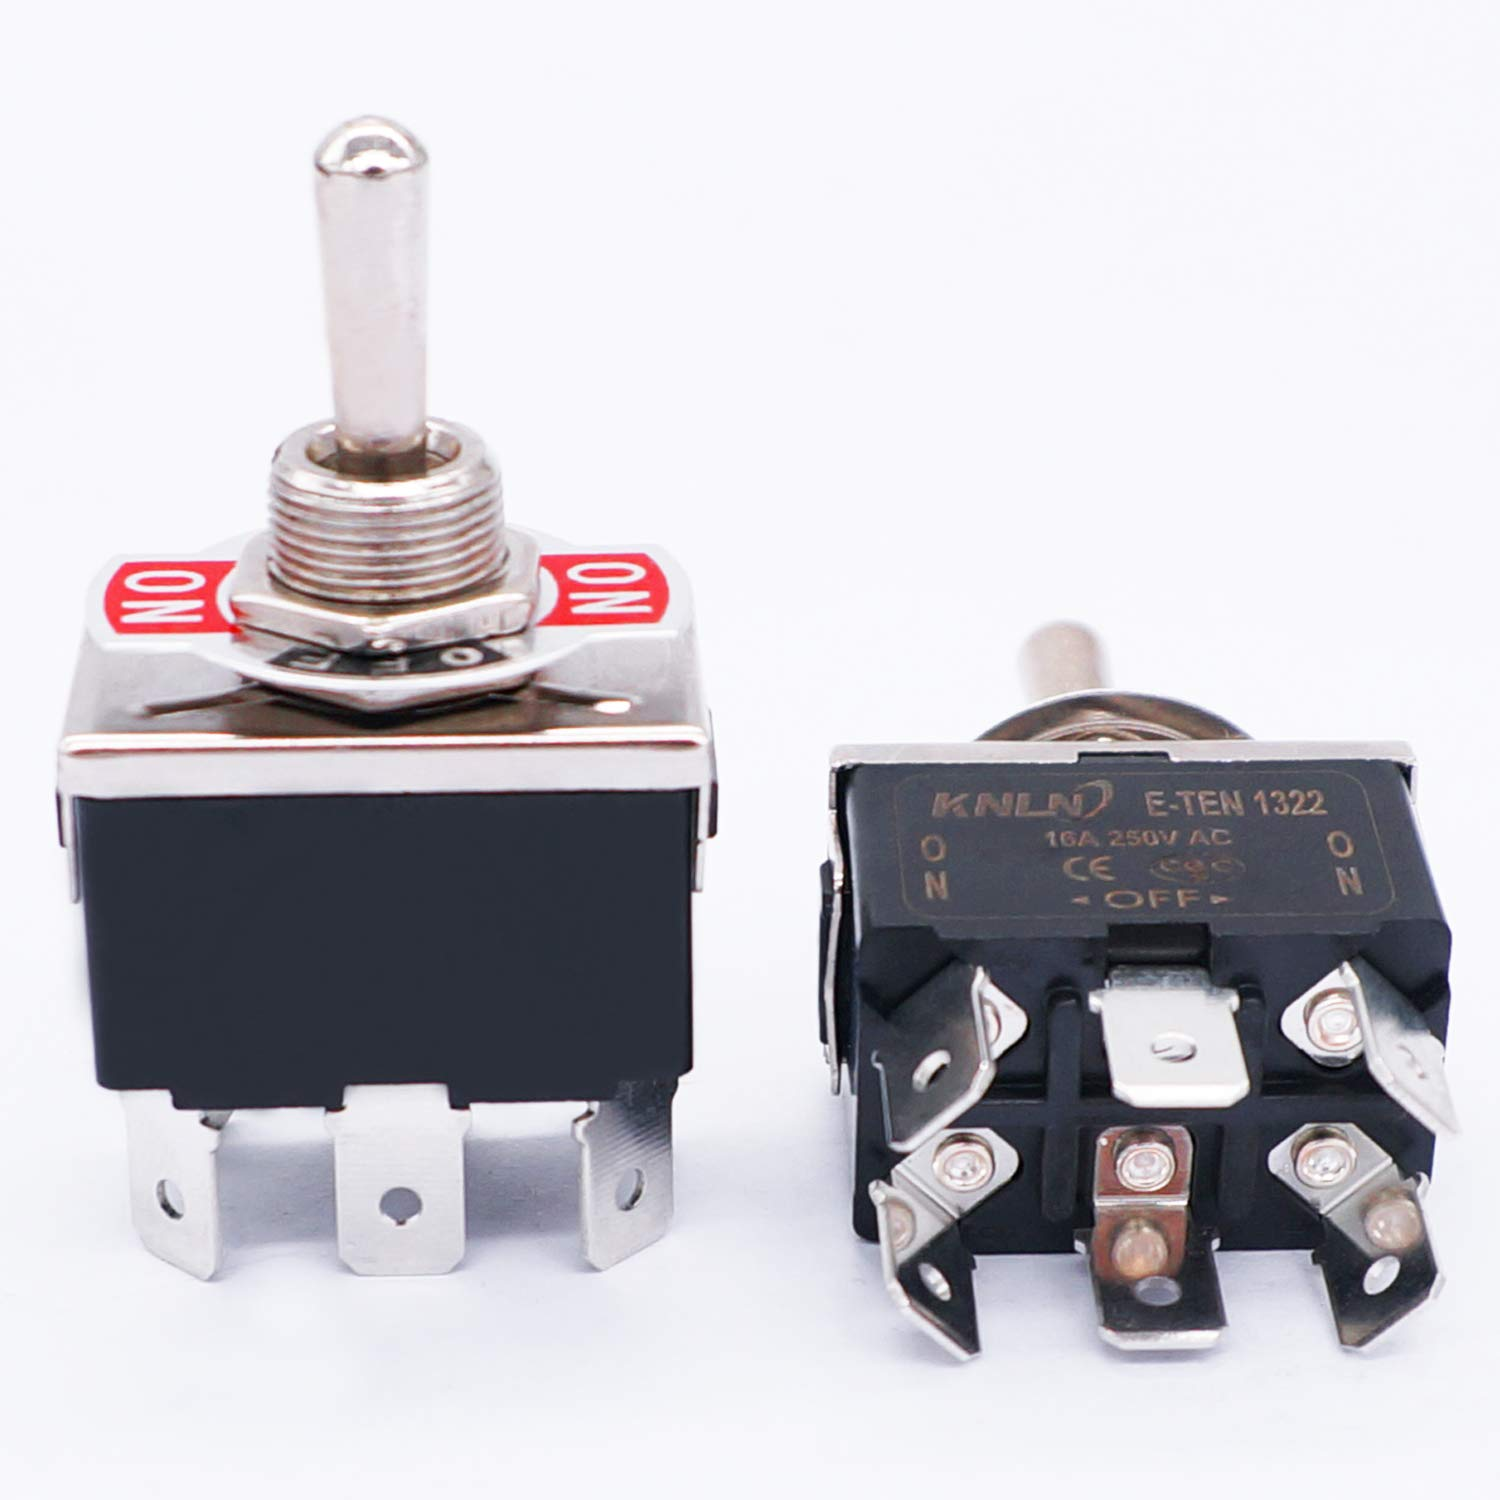 TWTADE 3 Pcs Toggle Switches 6 Pin 3 Position ON/Off/ON DPDT Heavy Duty Rocker Toggle Switch 16A 250VAC Spade Terminal Metal Bat Switch with Waterproof Boot Cap and 6.4mm Terminal Wires TEN-1322MZX: Industrial & Scientific